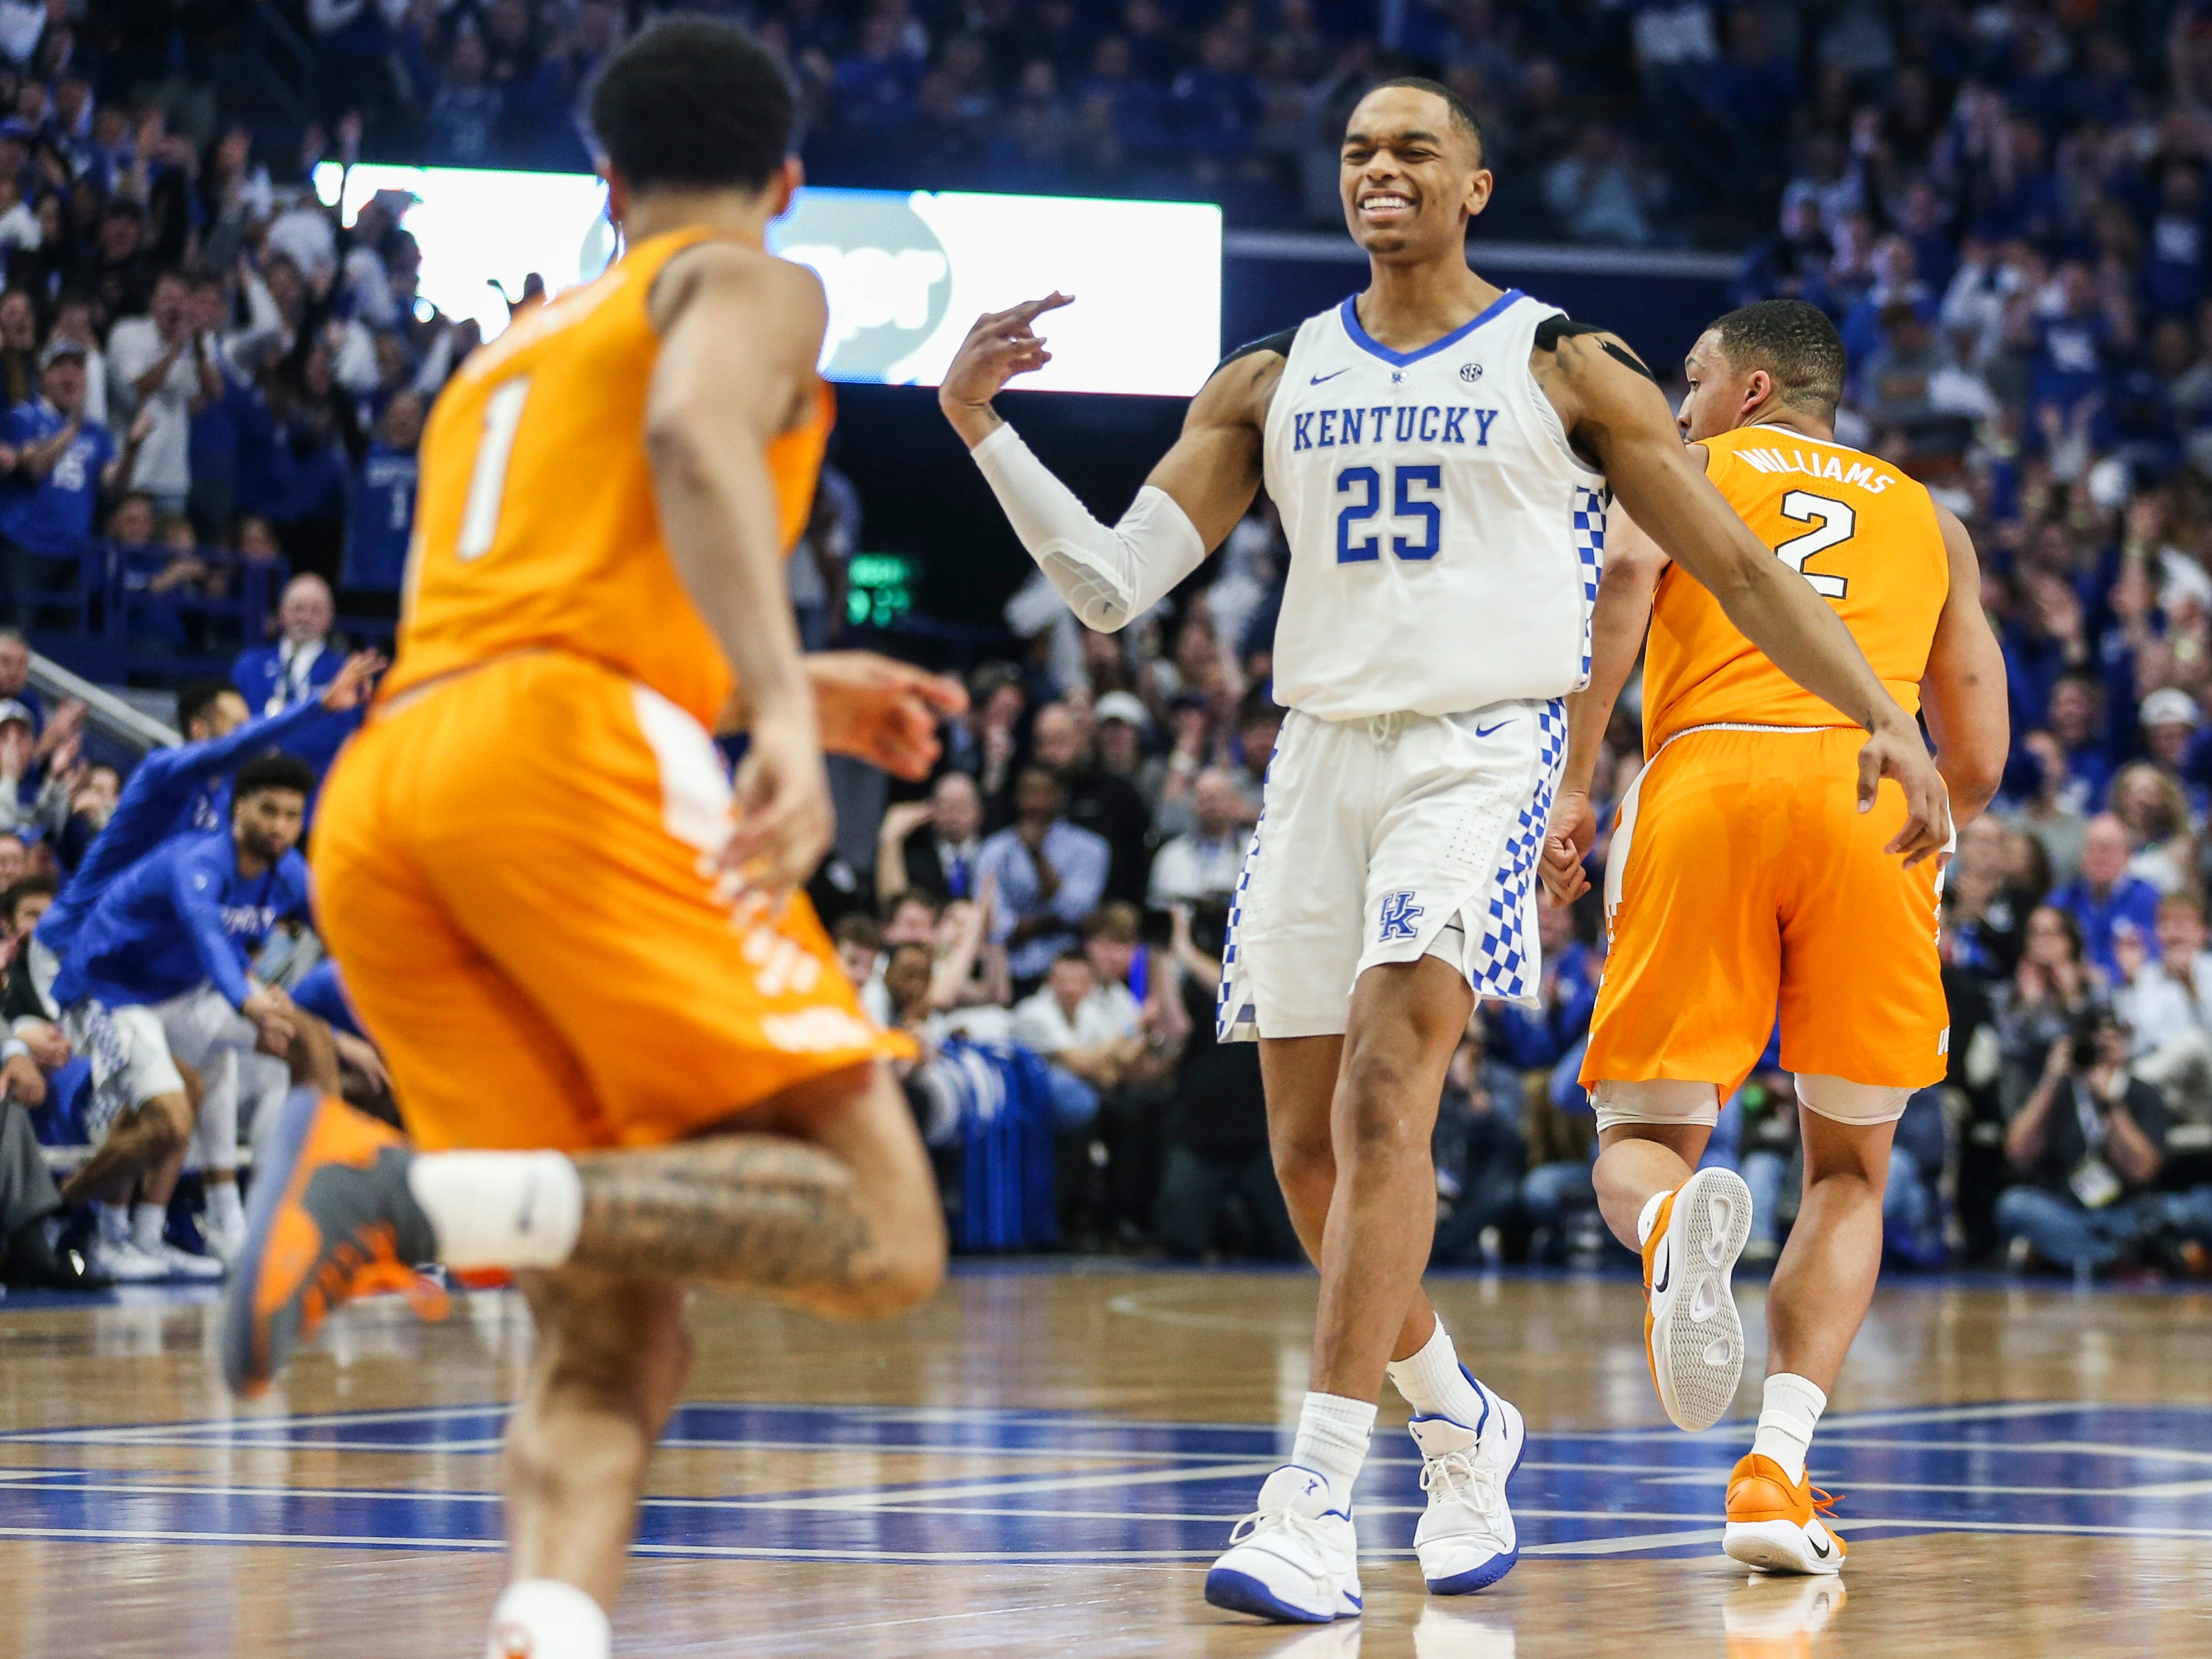 Kentucky's PJ Washington Jr celebrates after hitting a three in the first half against Tennessee. Feb. 16, 2019